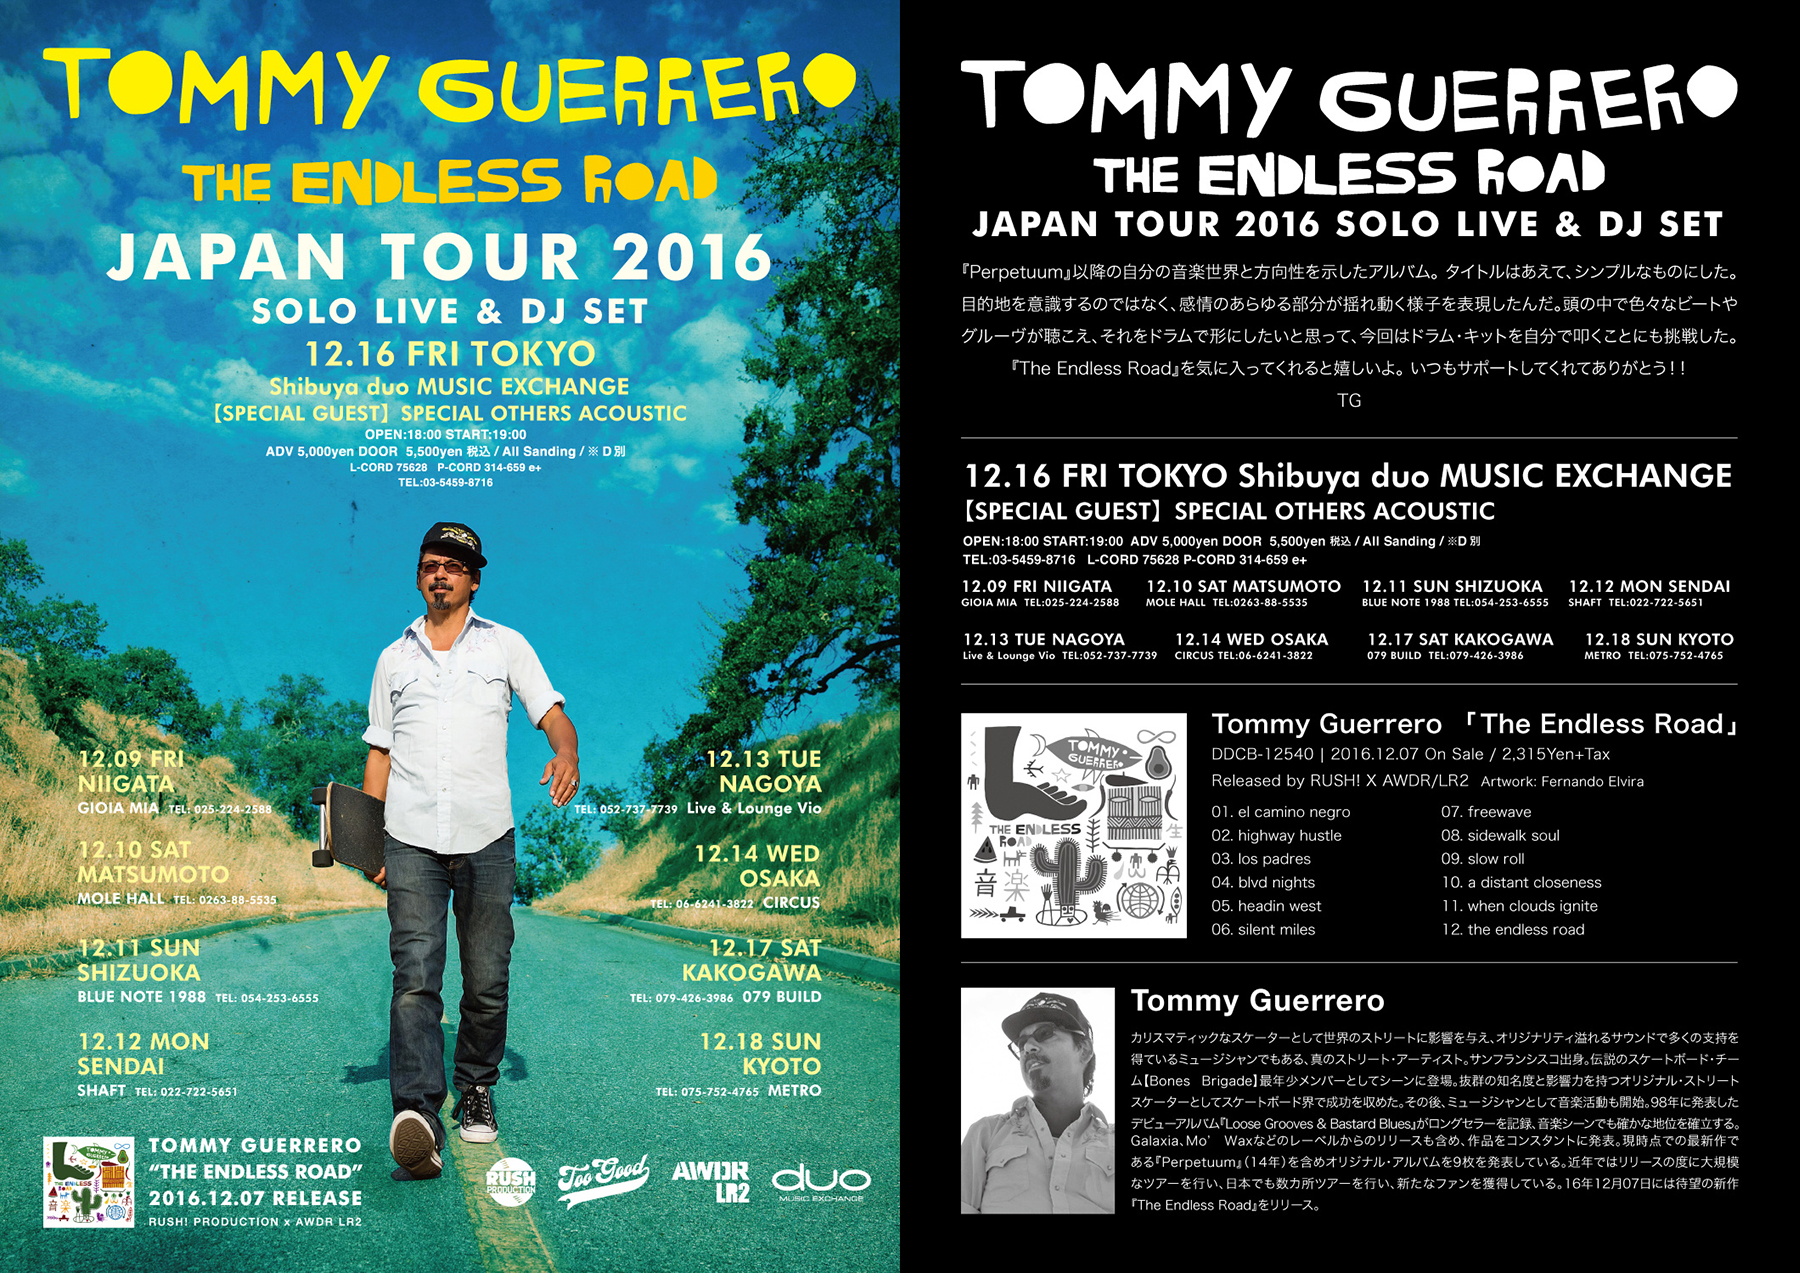 tg_jp_tour-2016_flyer_a5_all